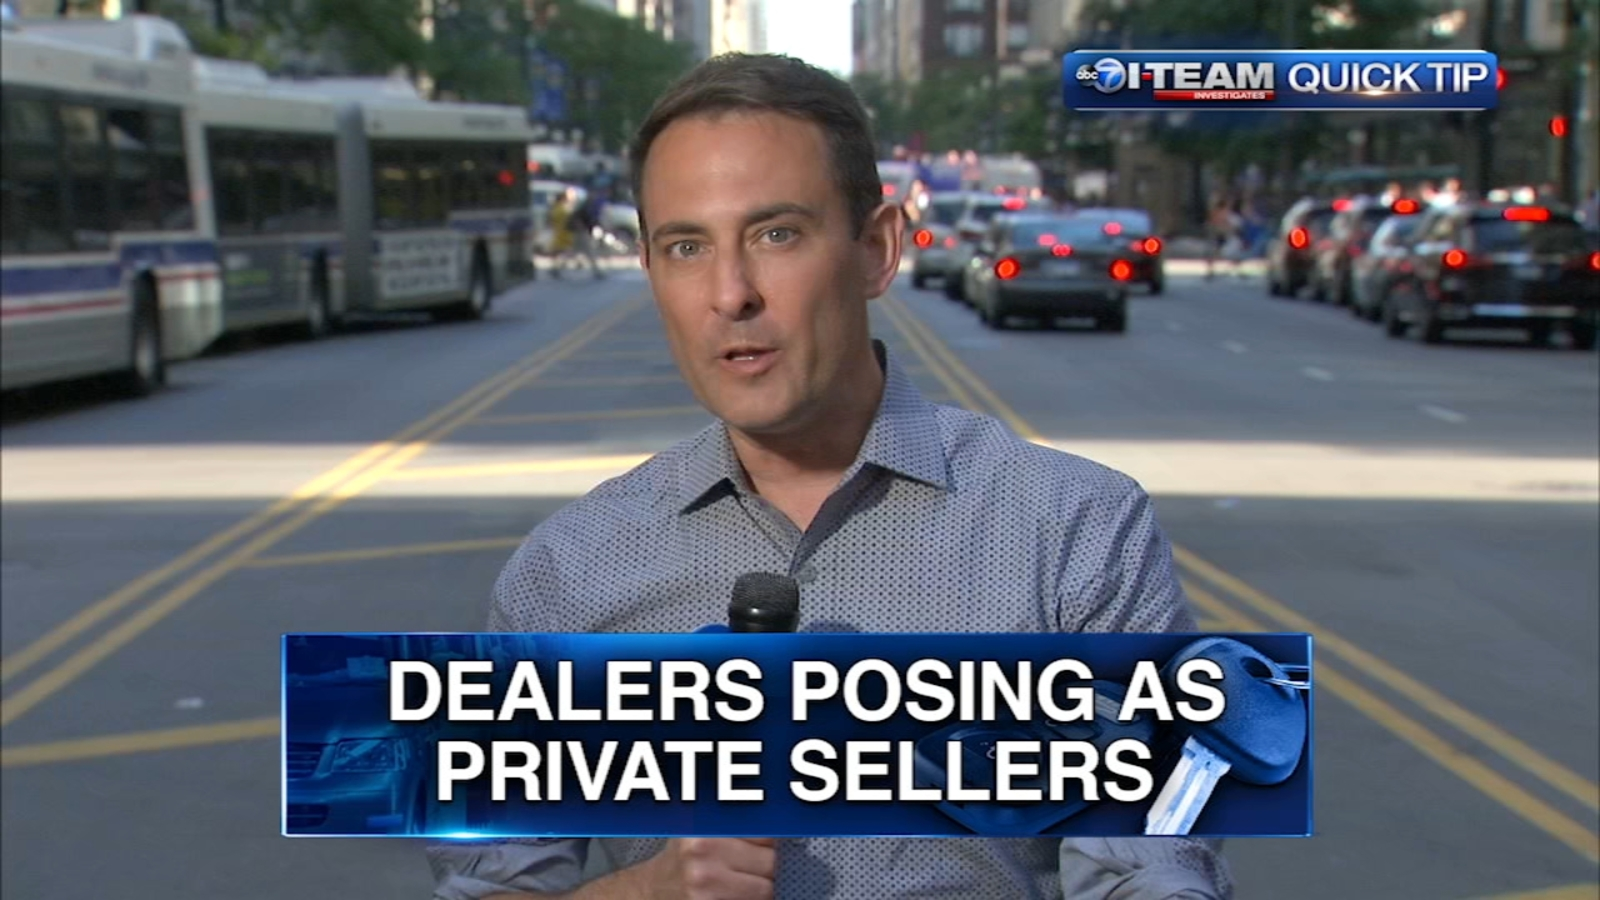 Quick Tip: Dealerships posing as private sellers on ...